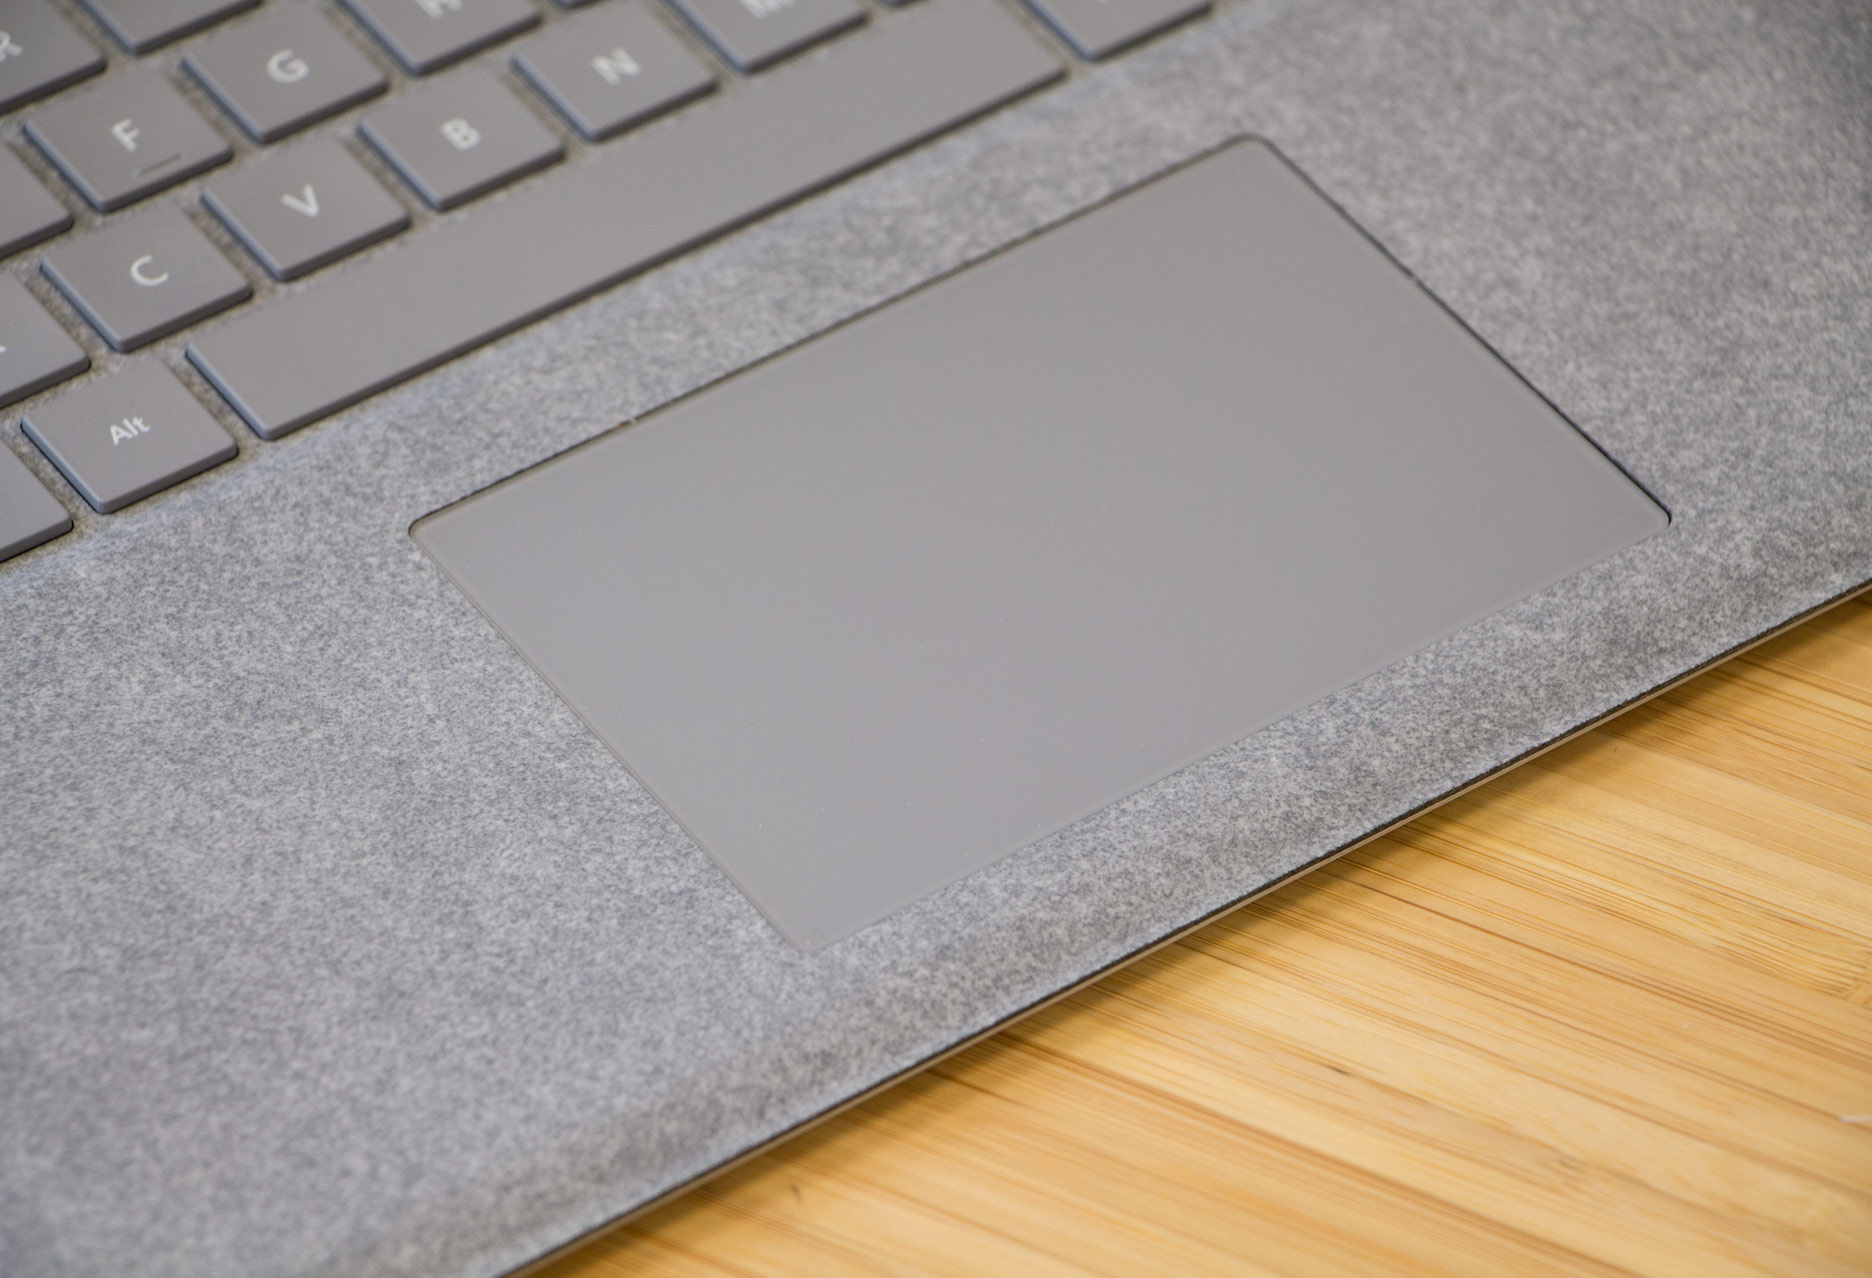 Microsoft Surface Laptop touchpad